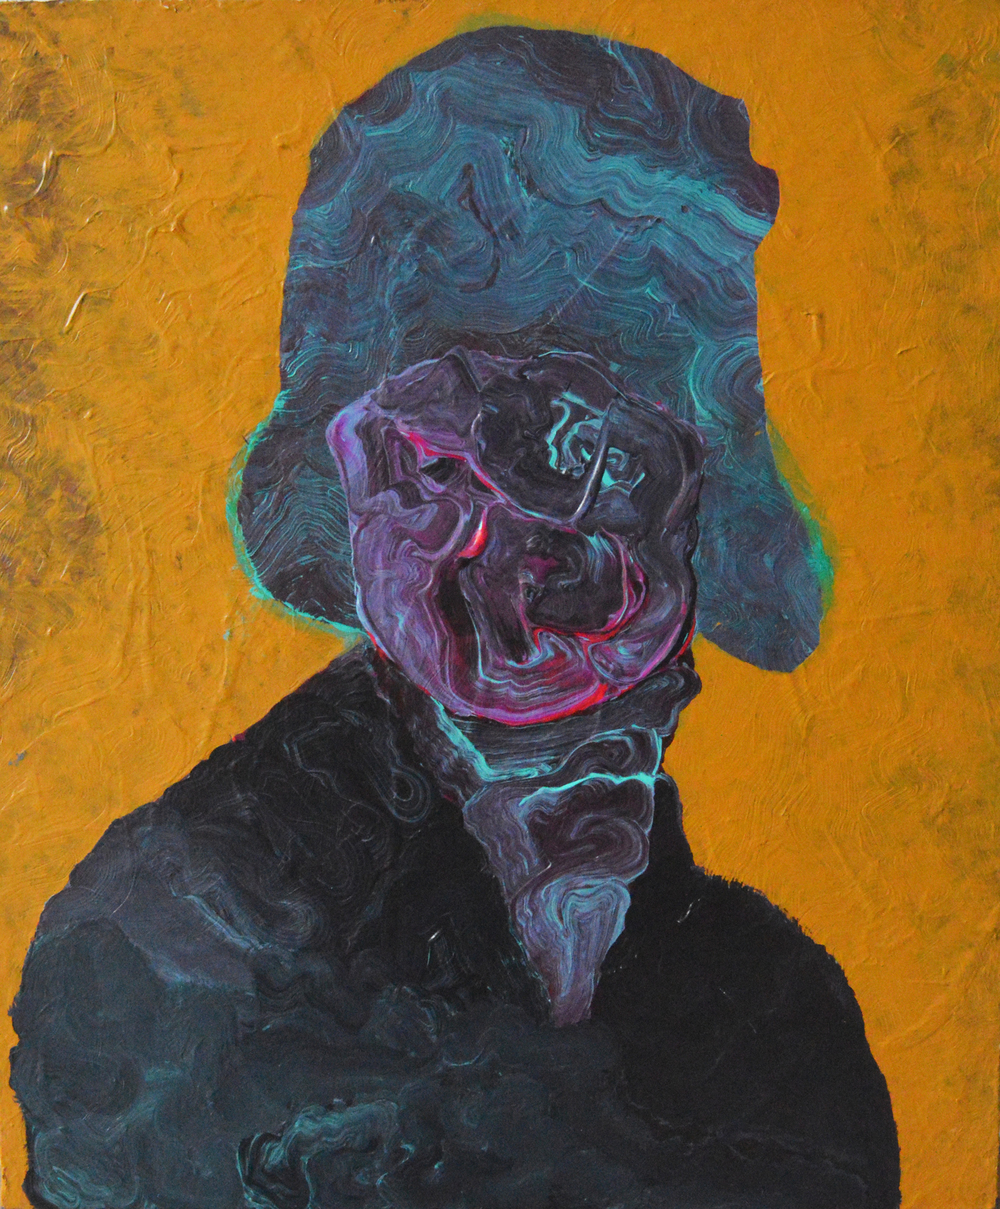 LADY IN CLOCHE   2013 Acrylic on canvas 24 x 18 in 60.9 x 45.7 cm